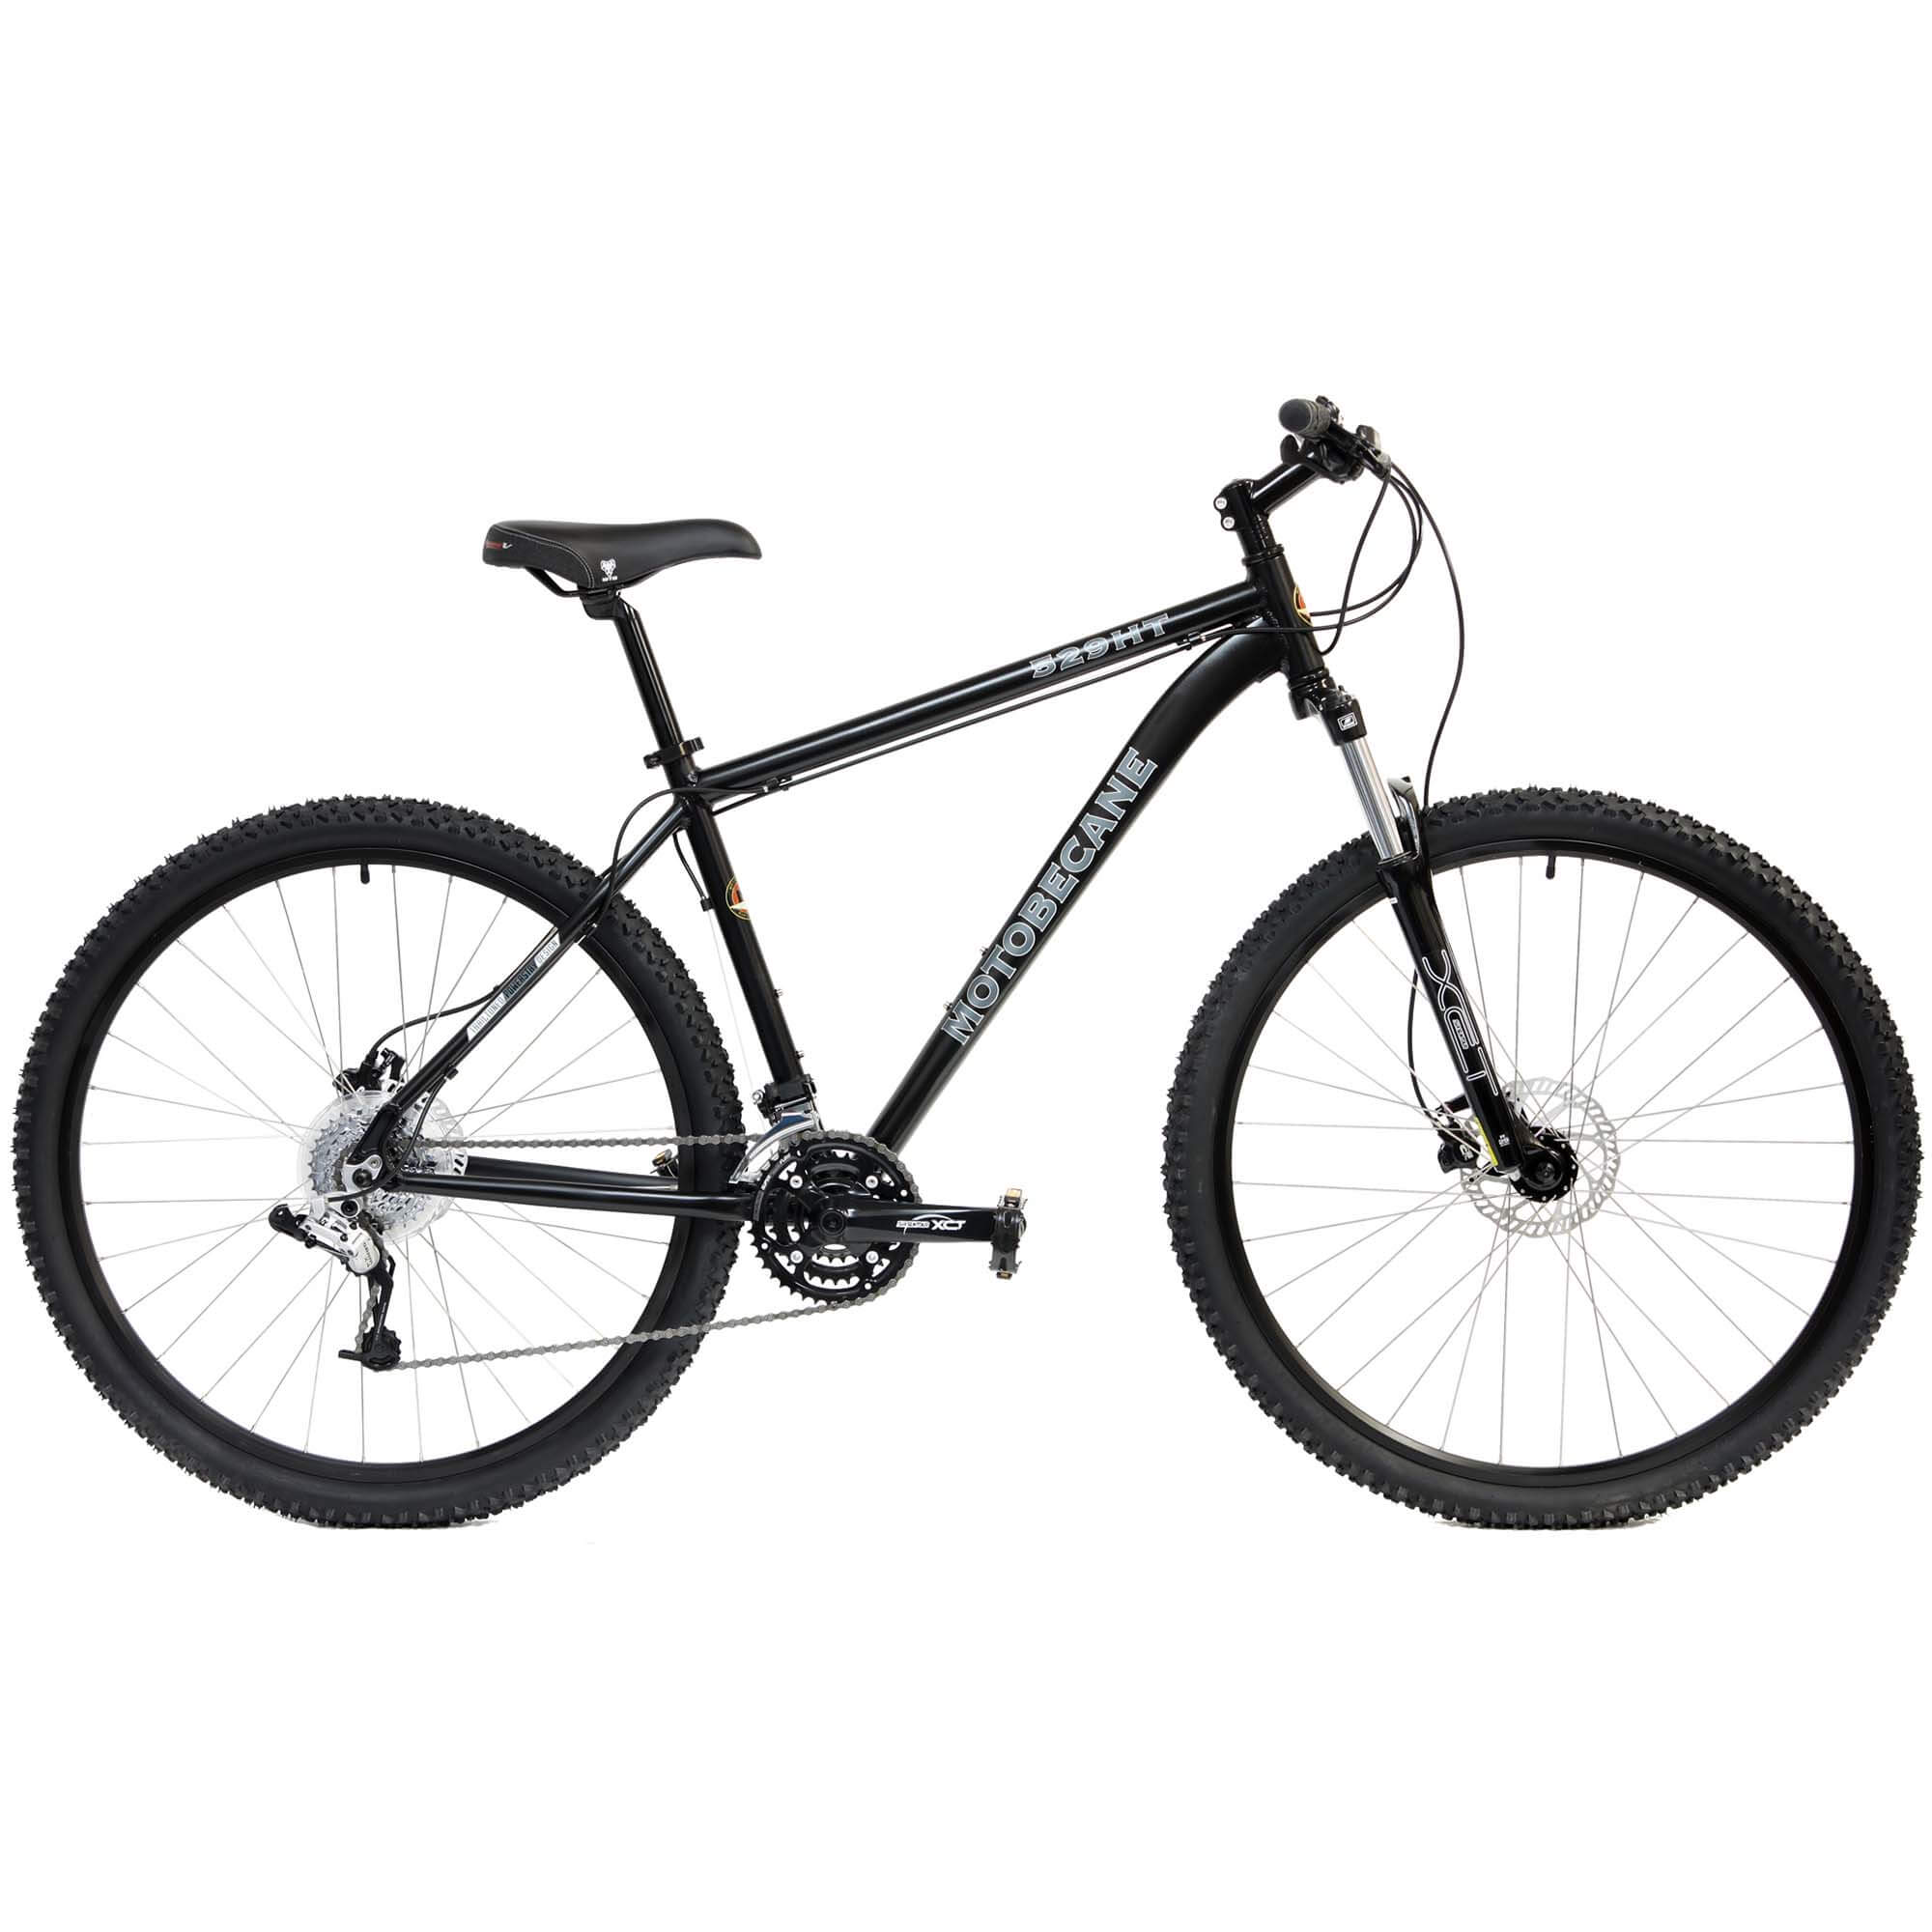 Mountain Bike - Our Best Seller